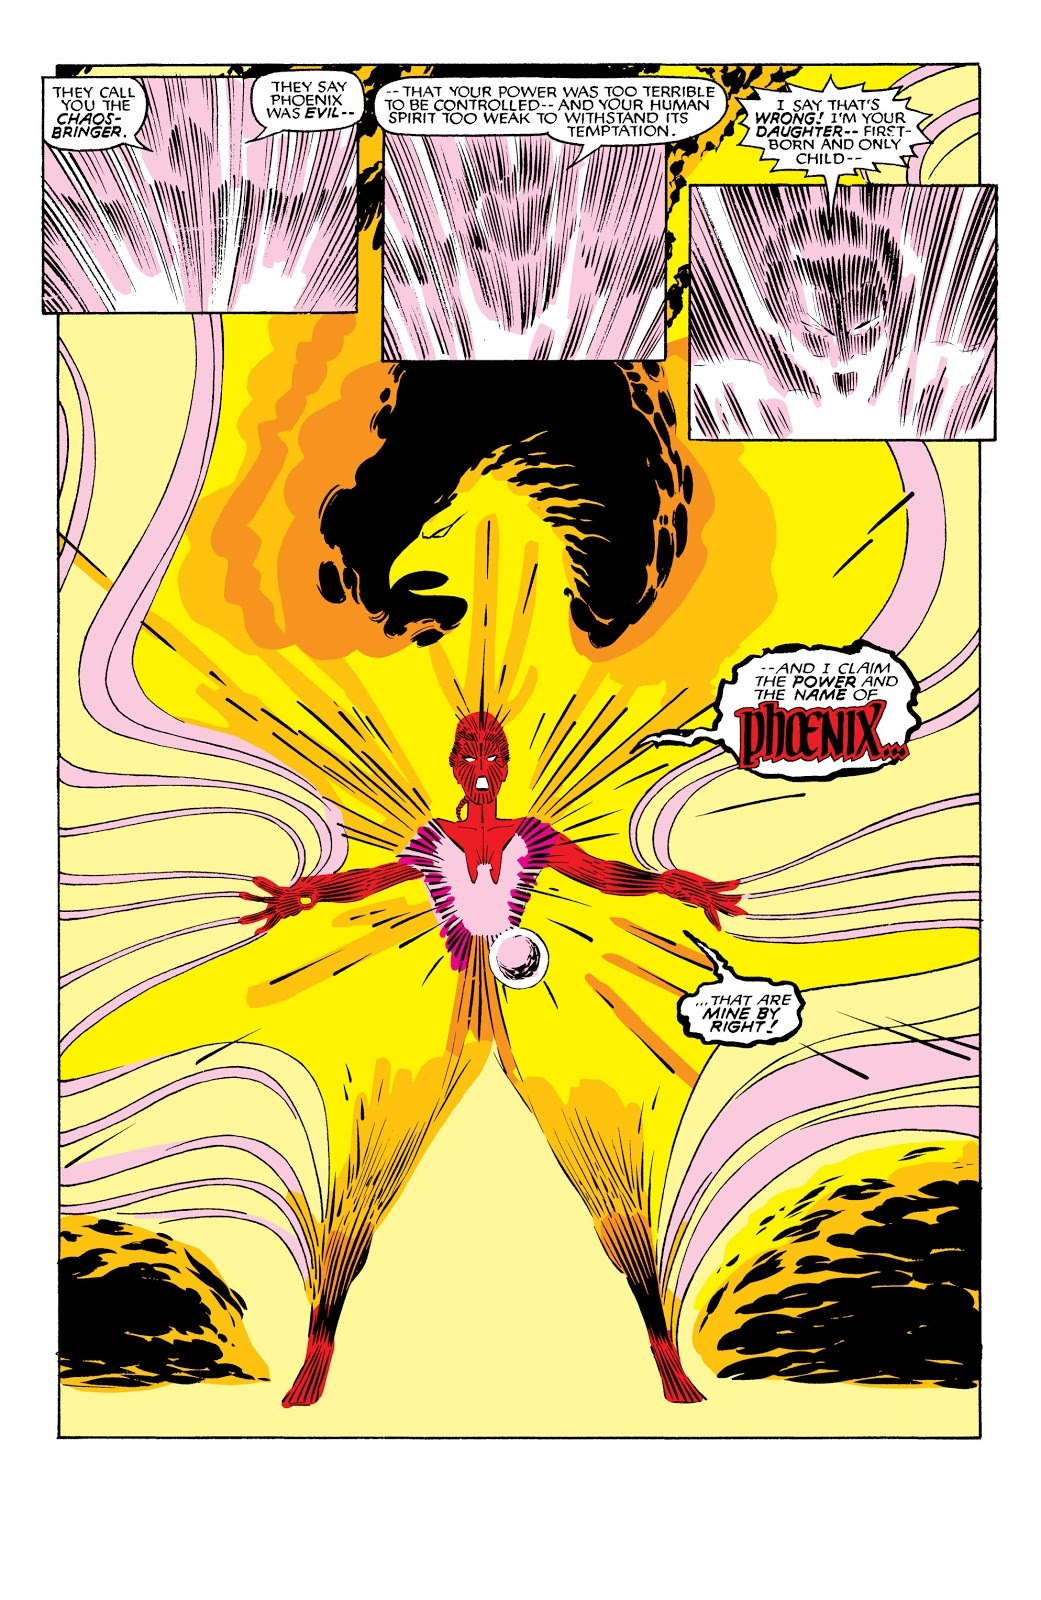 Awakens the power of the Phoenix Force by bonding with Jean's essence